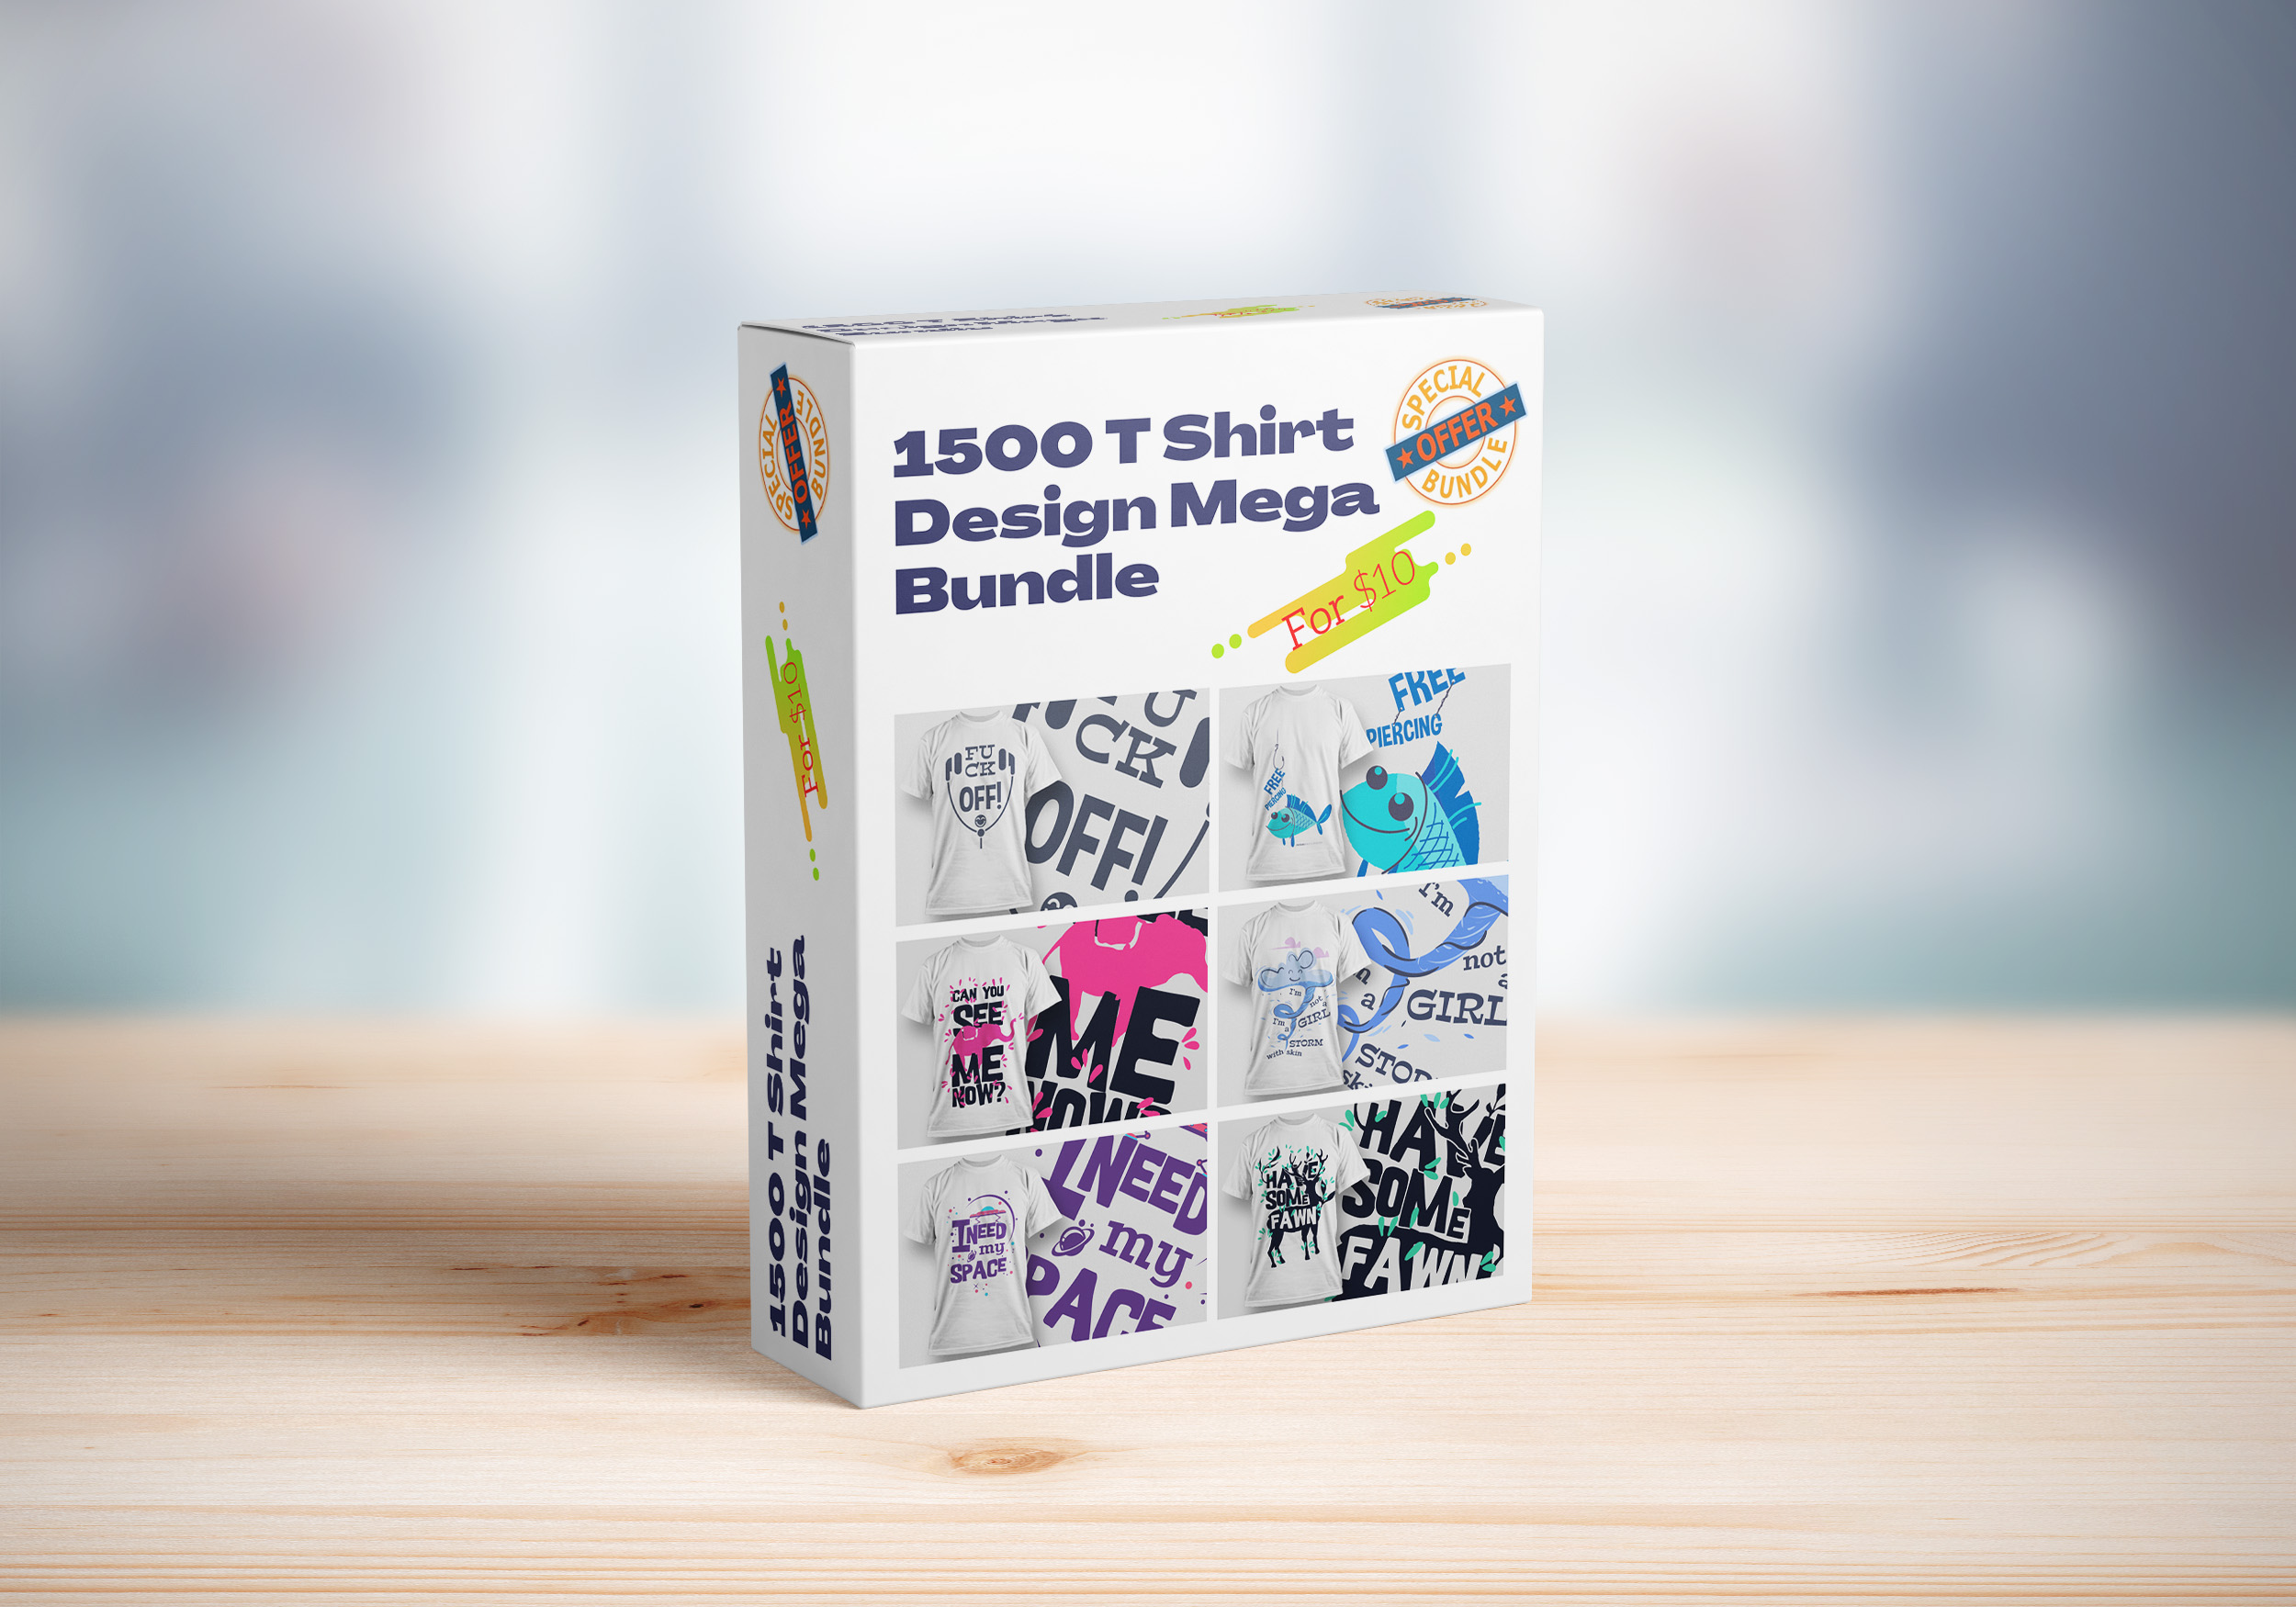 I Will Give You 1500 T Shirt Design Mega Bundle